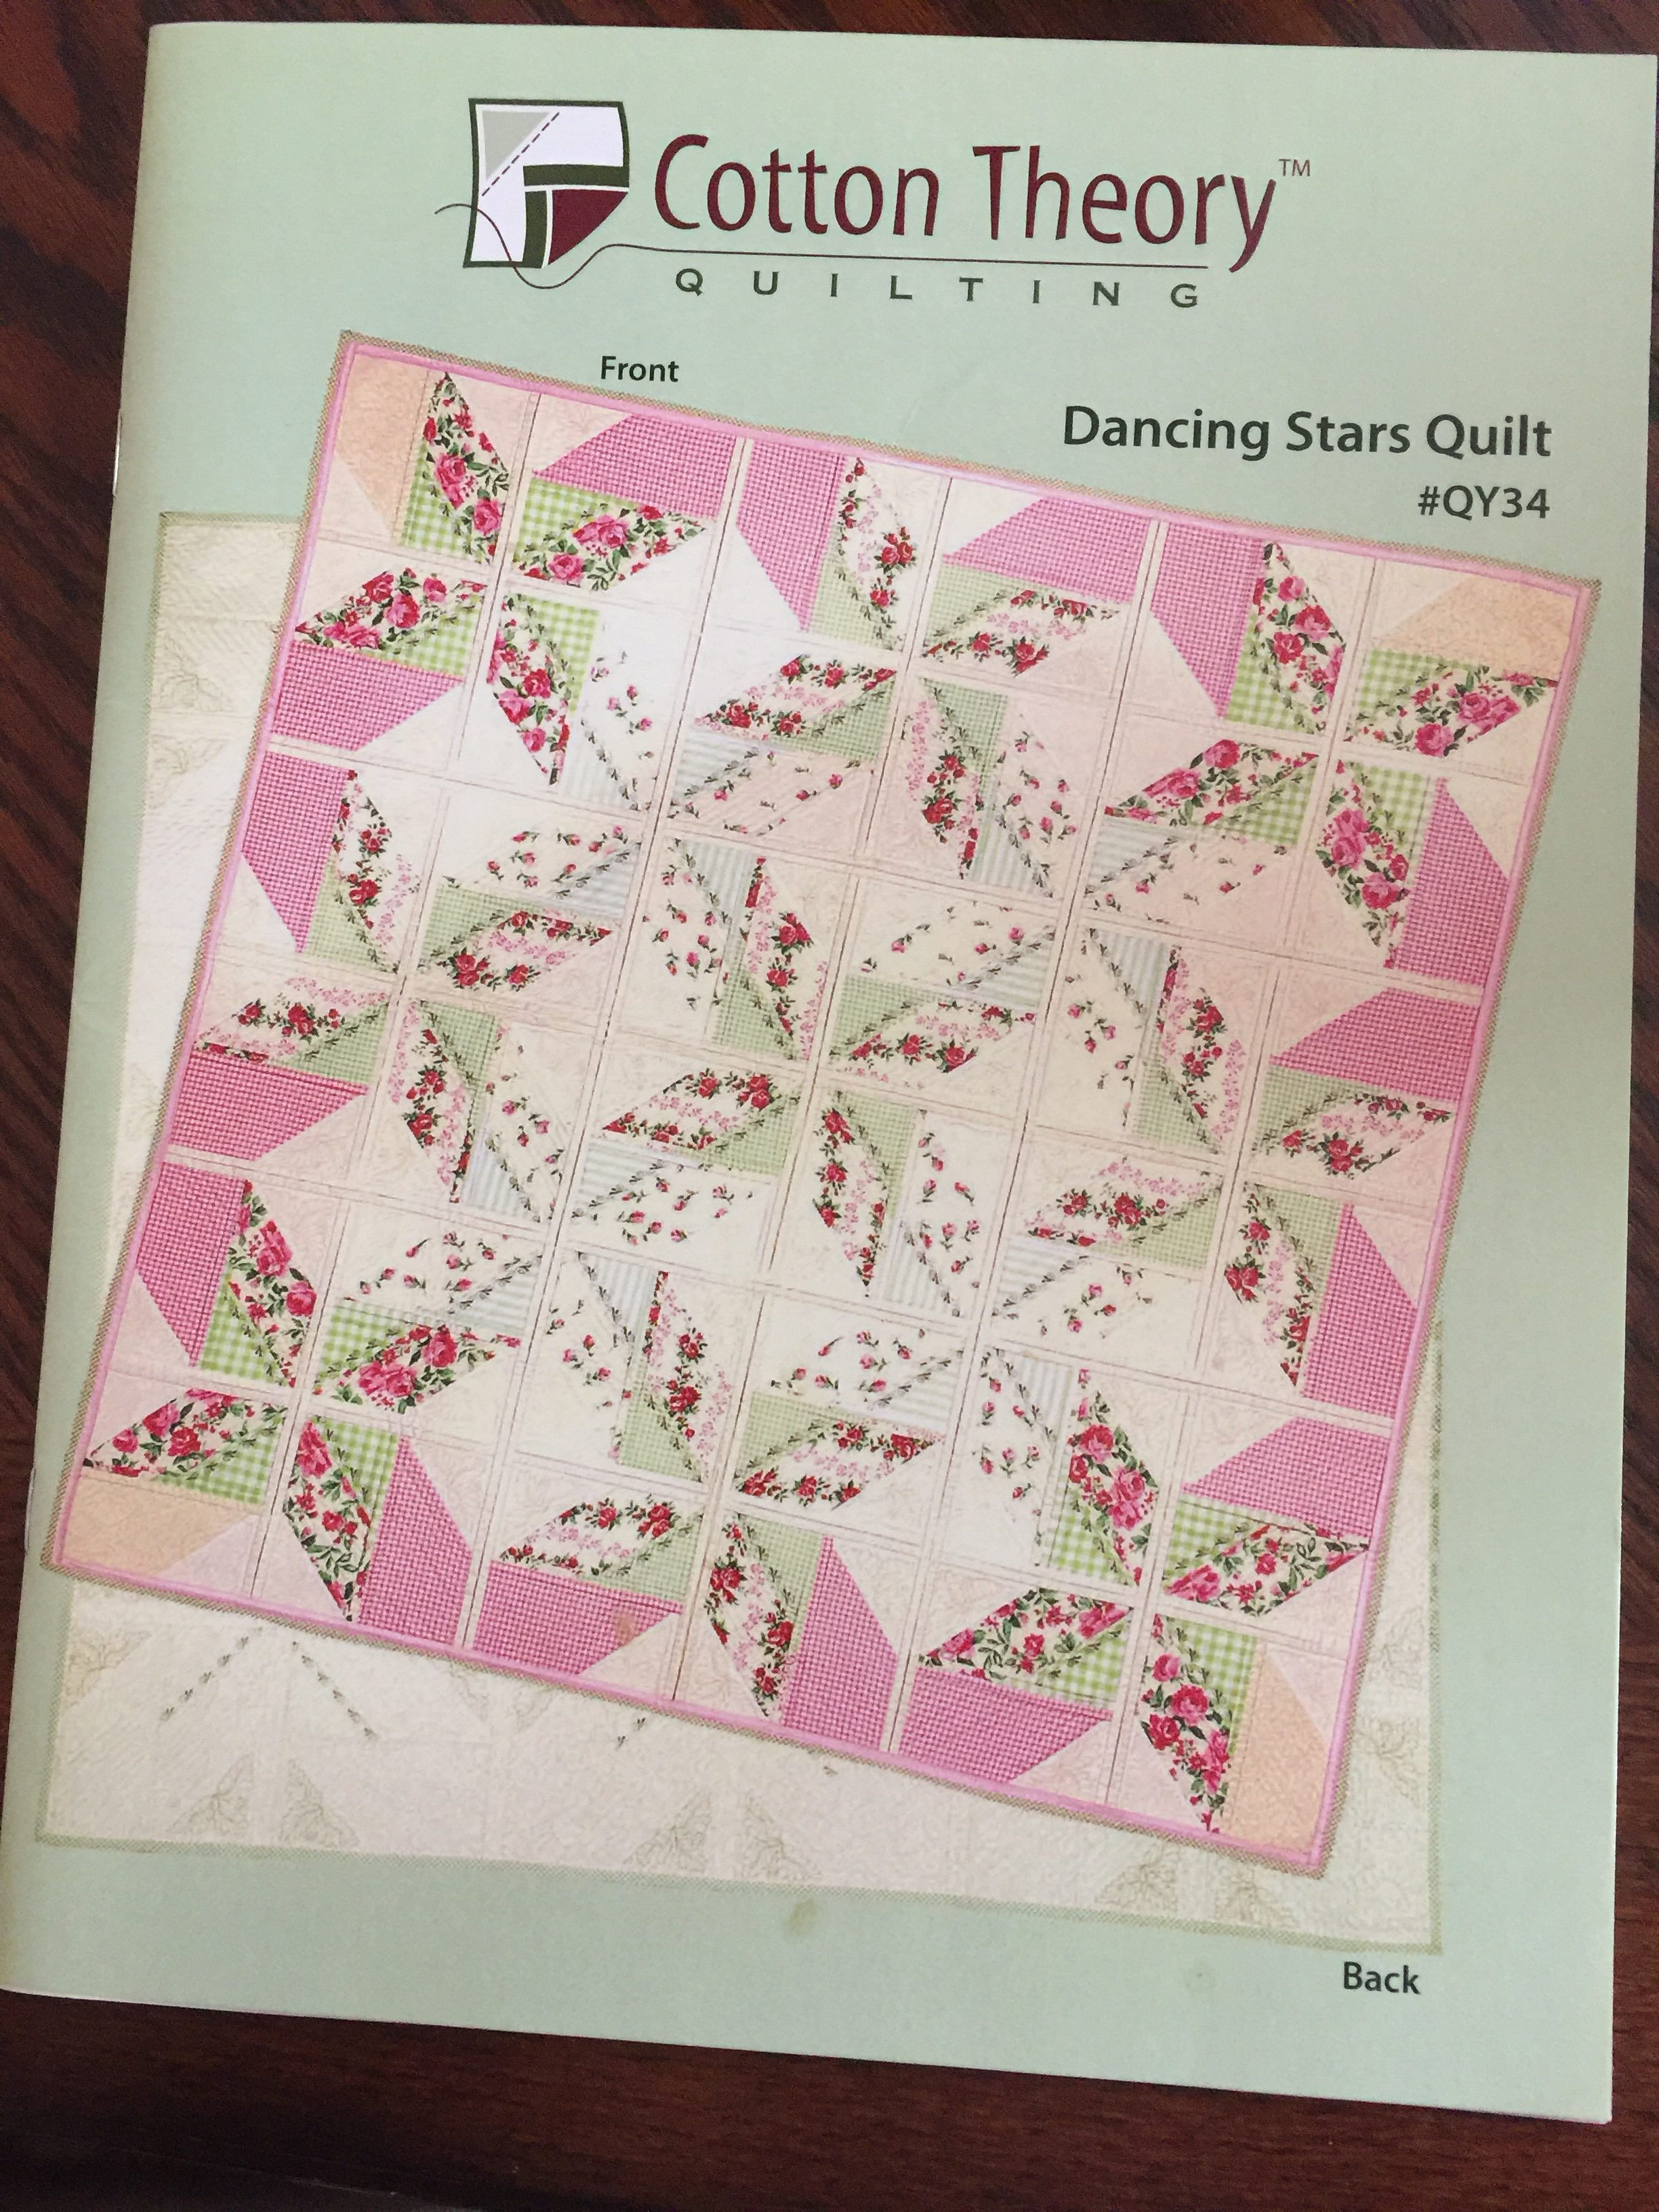 Lana Russel | Handi Quilter Quilt Your Desire Inspiration Squad ... : cotton theory quilting video - Adamdwight.com